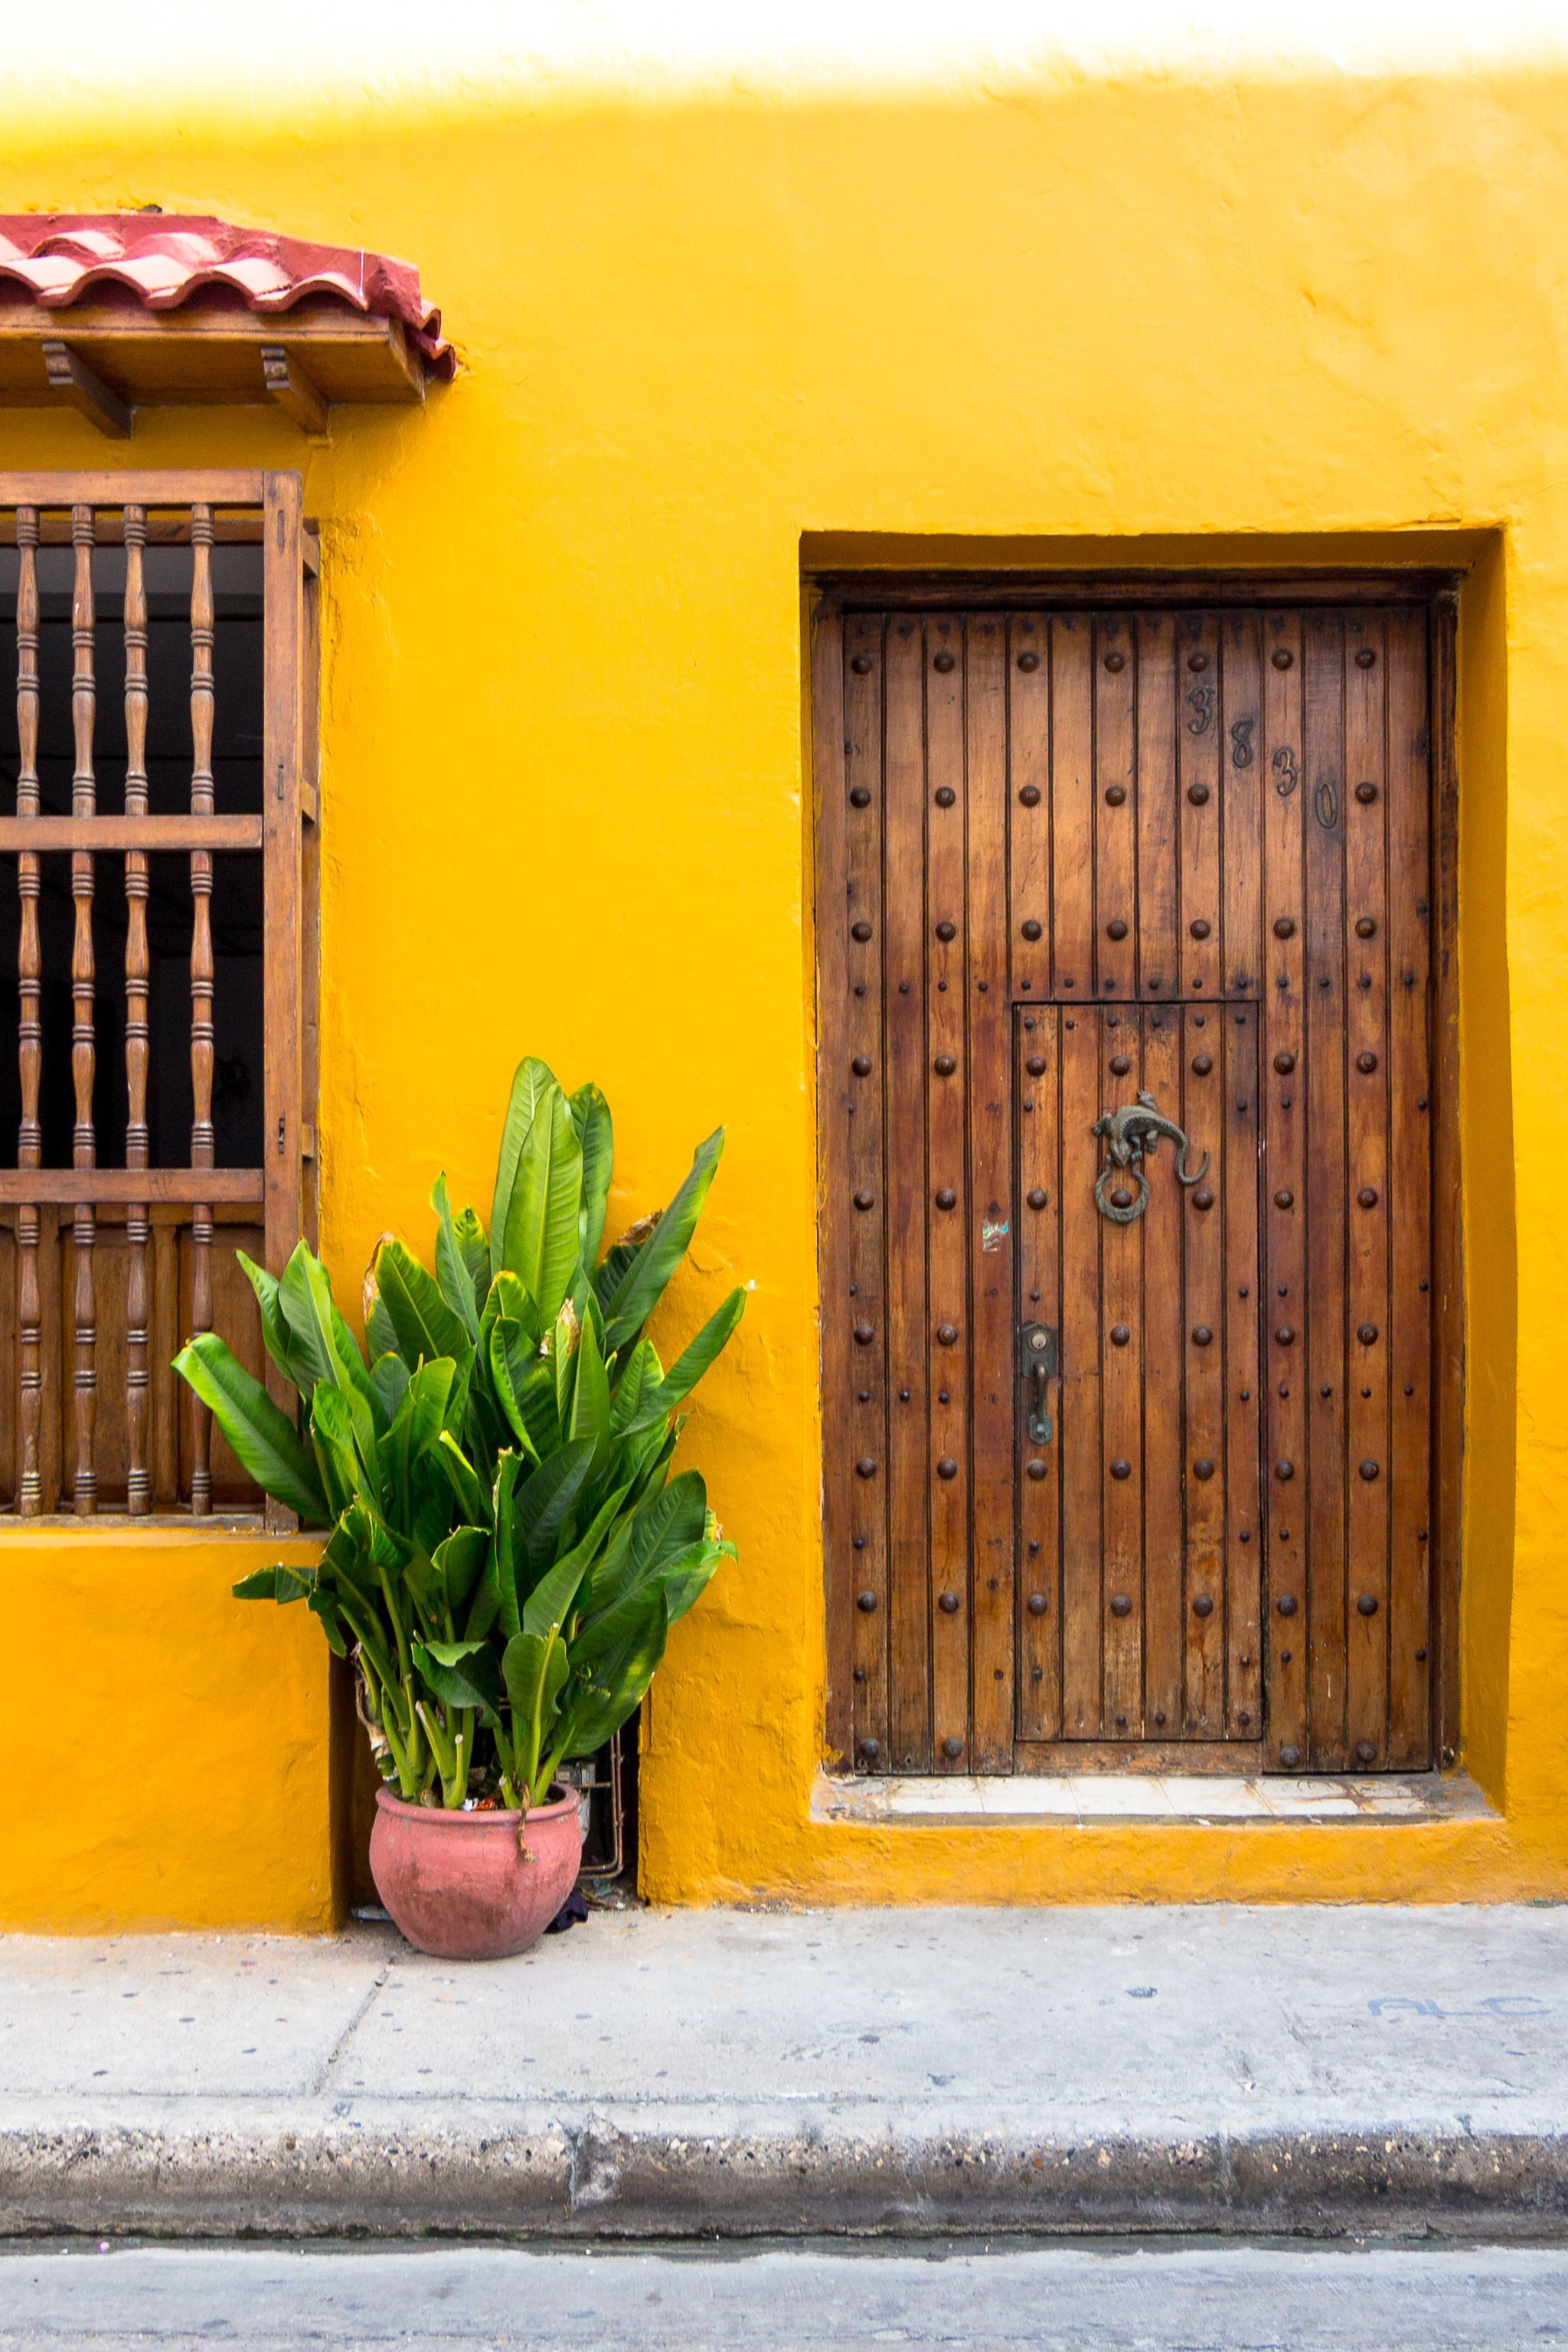 20 Killer Photos of Puerto Rico | Doors, San juan and Culture travel